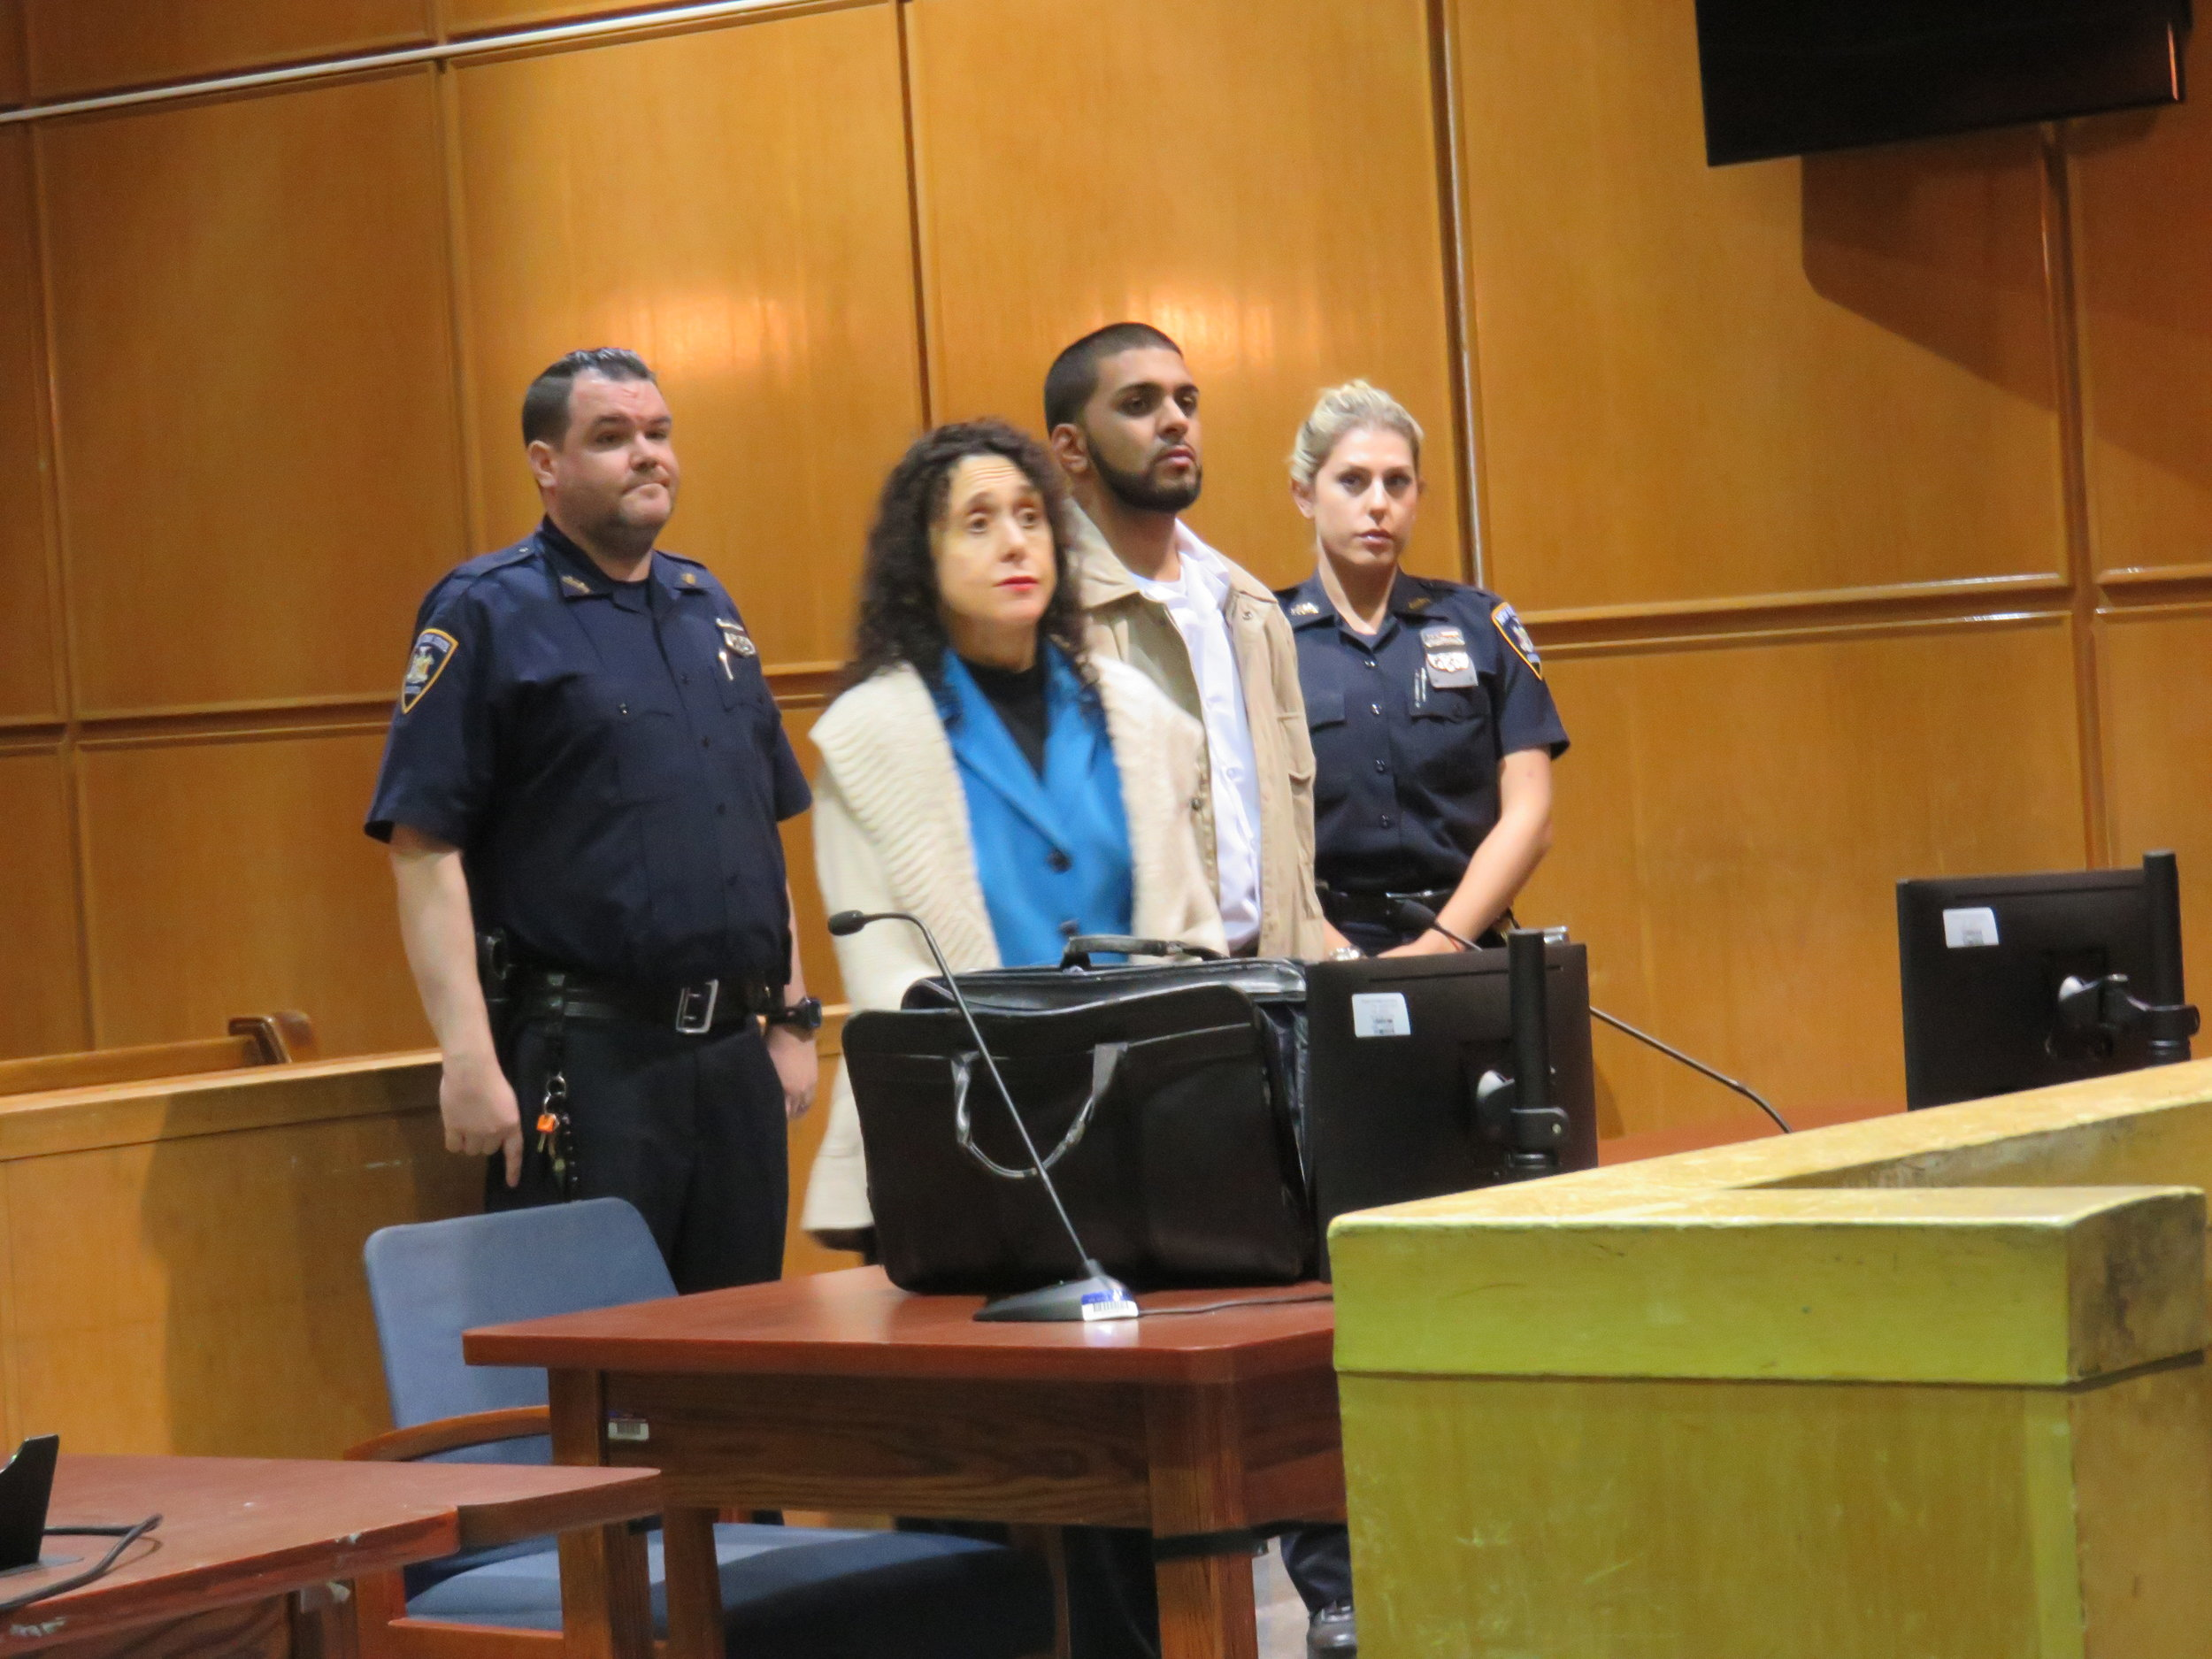 Muhammad Ali (second from right) is accused of crashing his car into a police officer and crushing his leg appeared in Queens Criminal Court Monday.  Eagle  photo by David Brand.